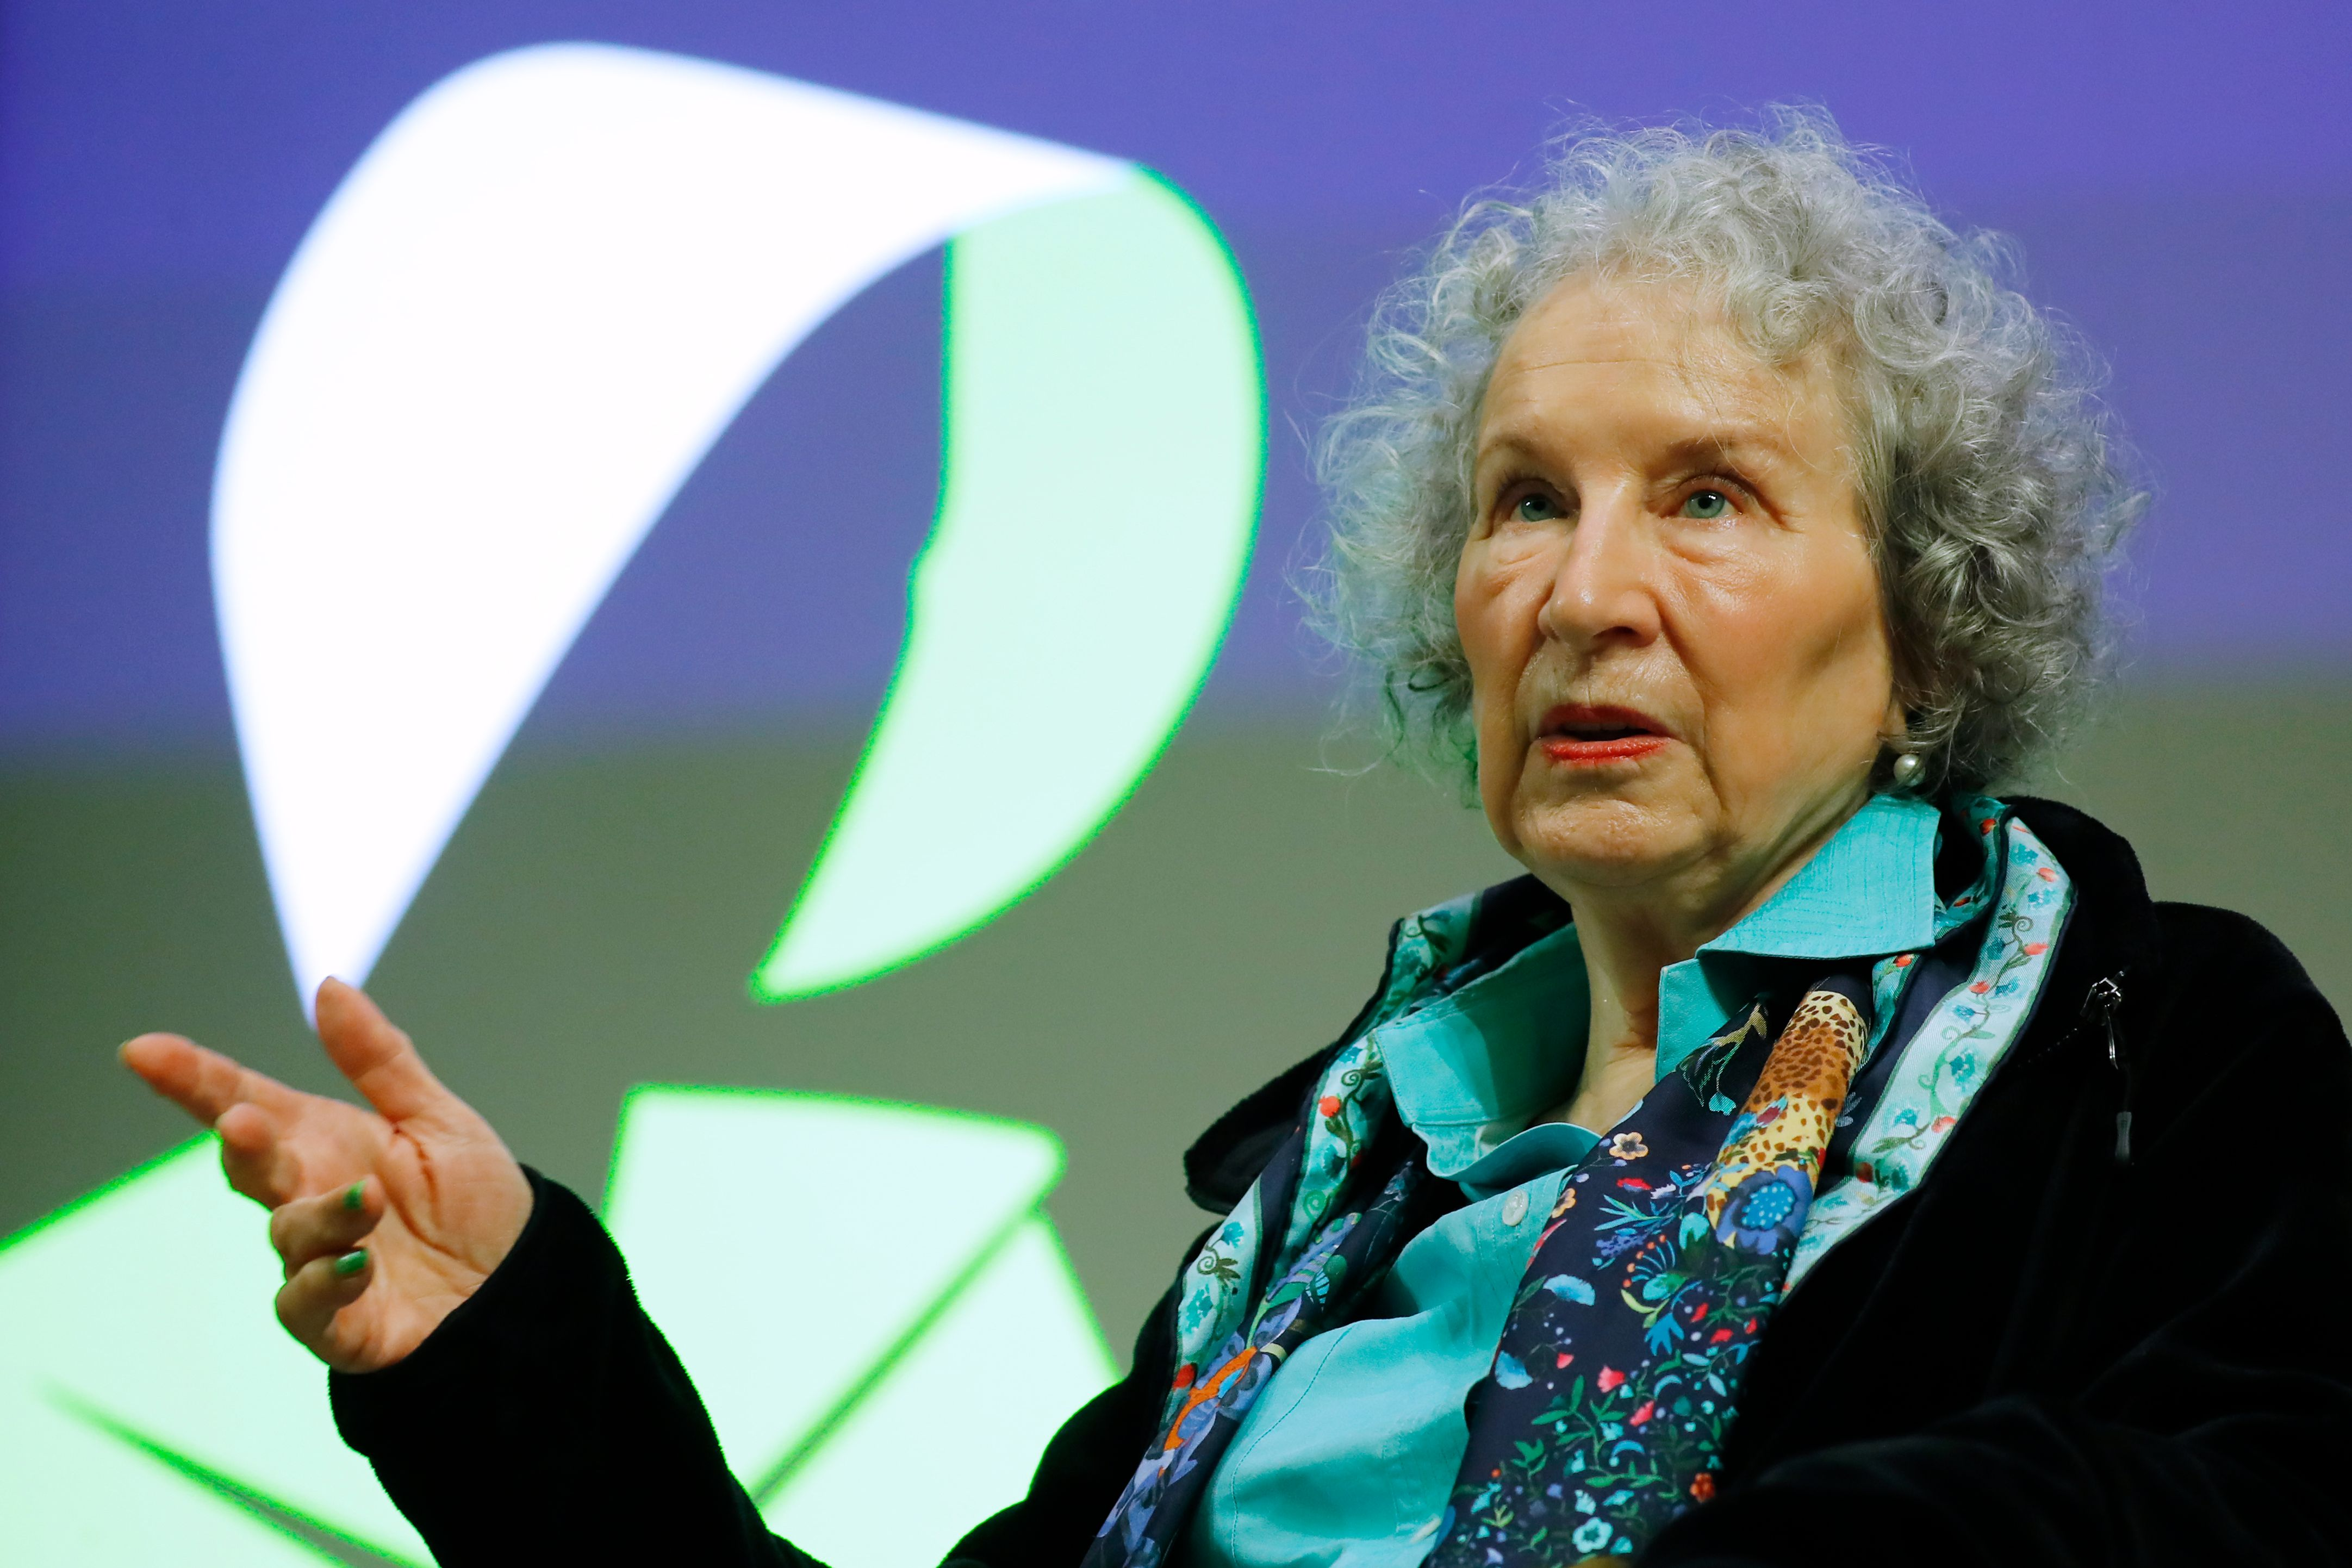 Atwood Reveals Inspiration forThe Testaments